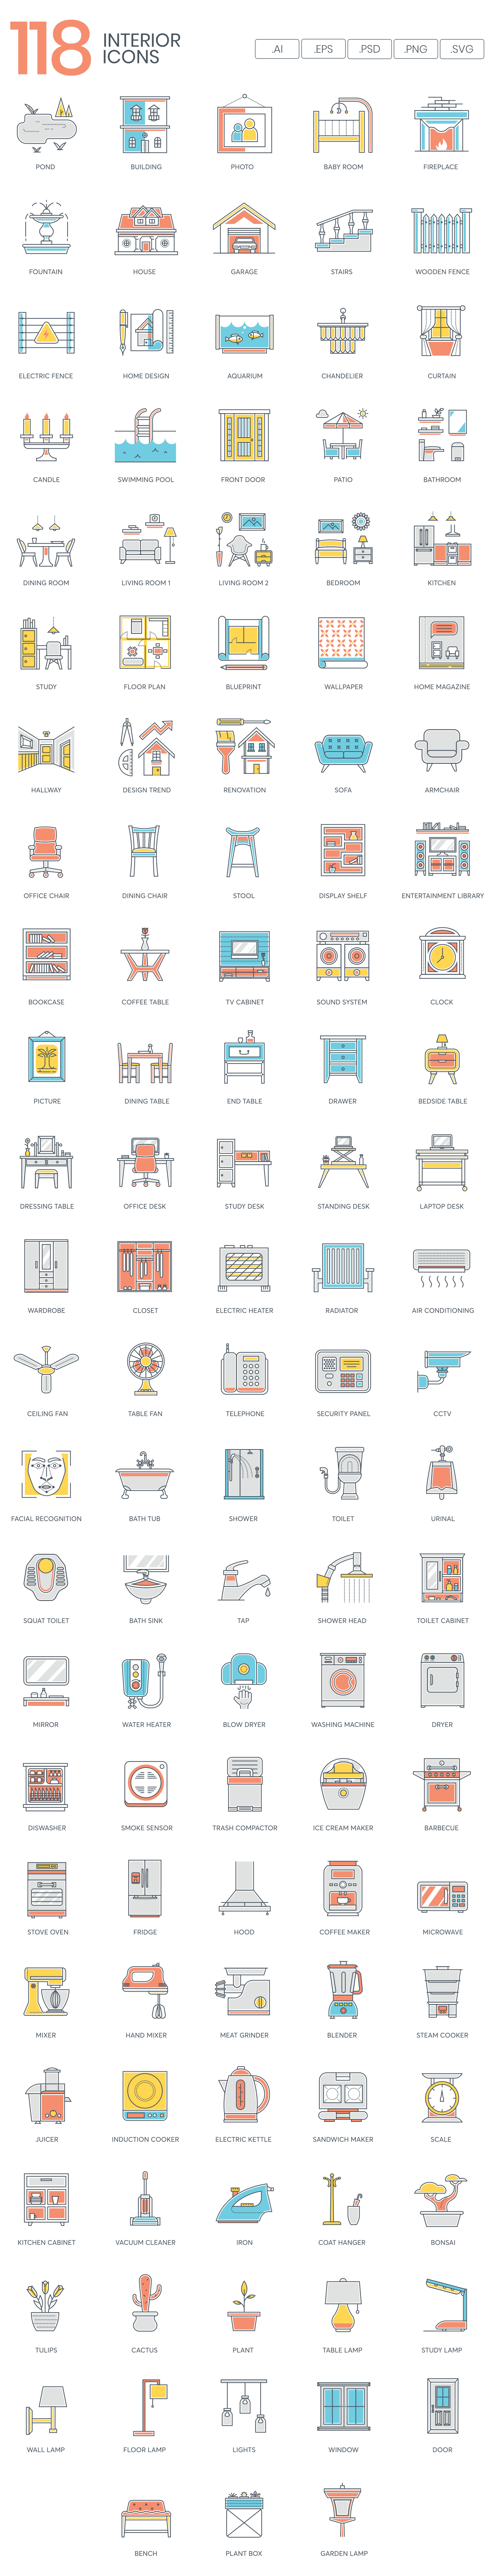 Preview Image for Interior Icon Set